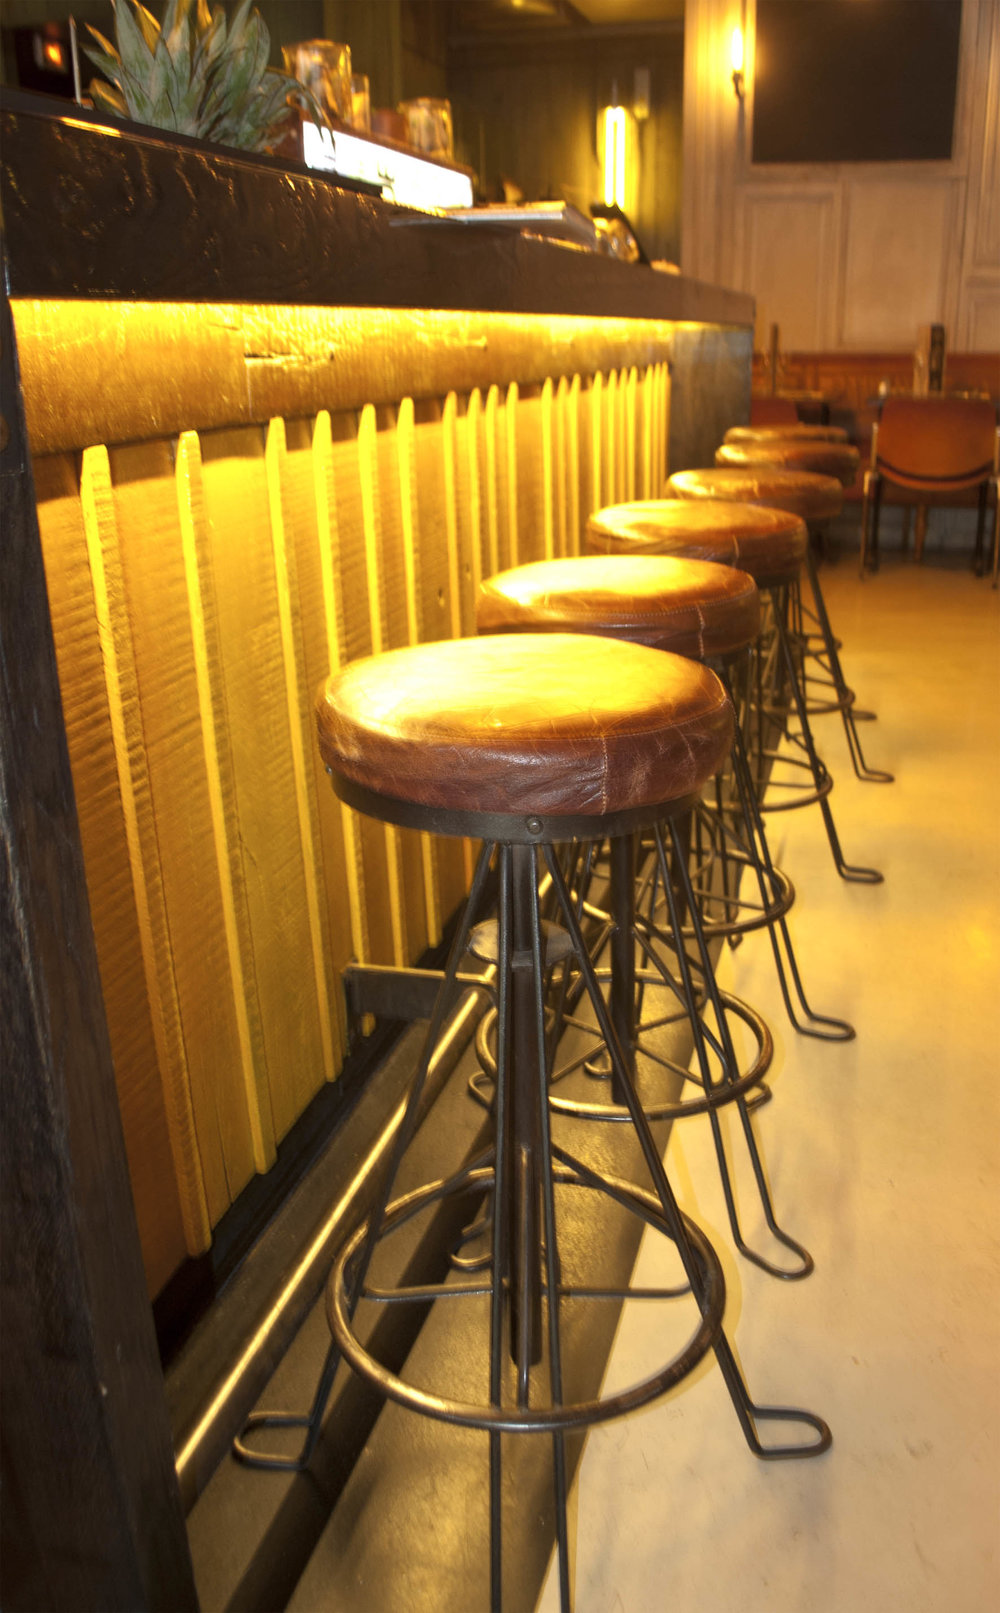 The under-lit rustic bar with worn leather bar stools